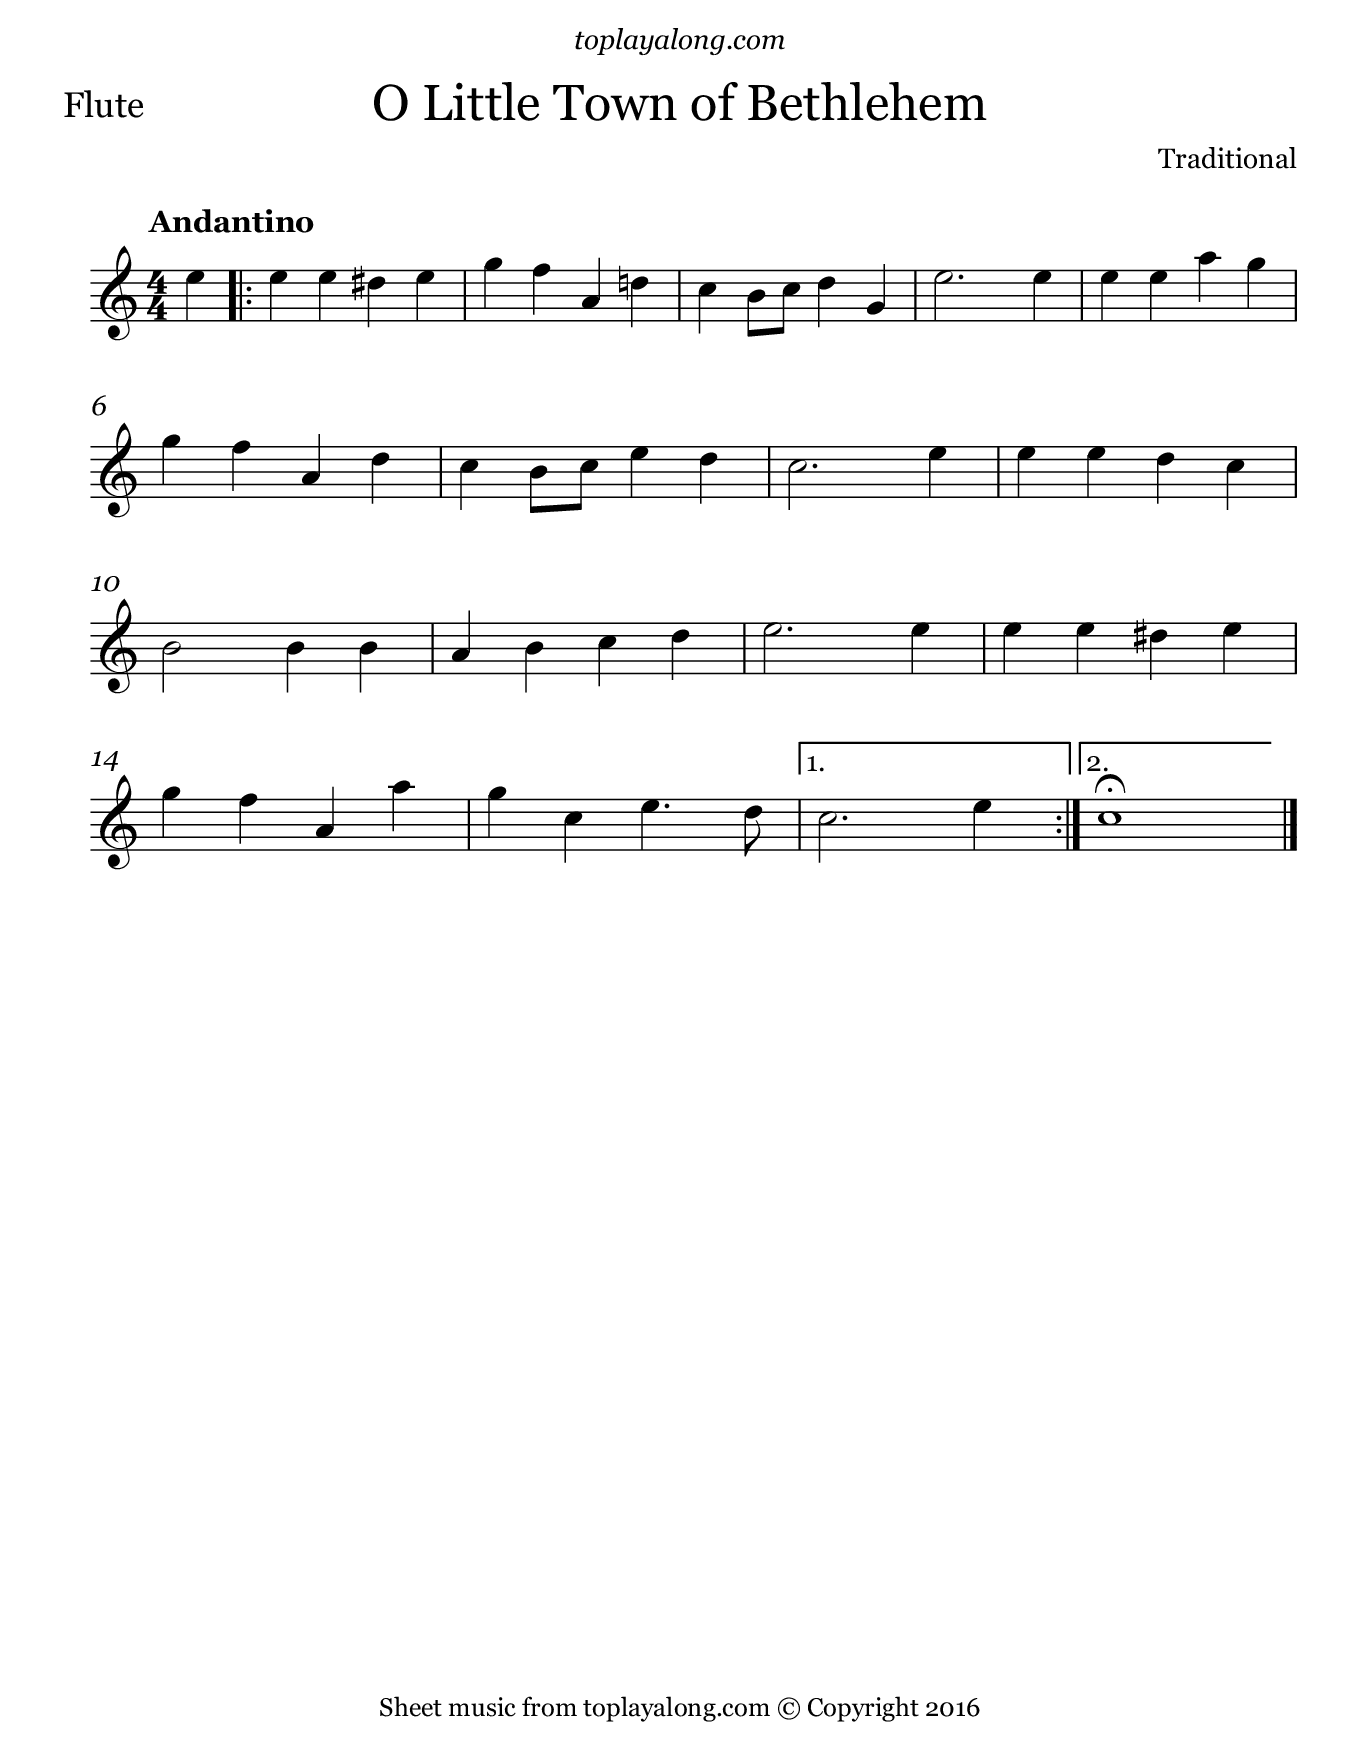 O Little Town of Bethlehem. Sheet music for Flute, page 1.